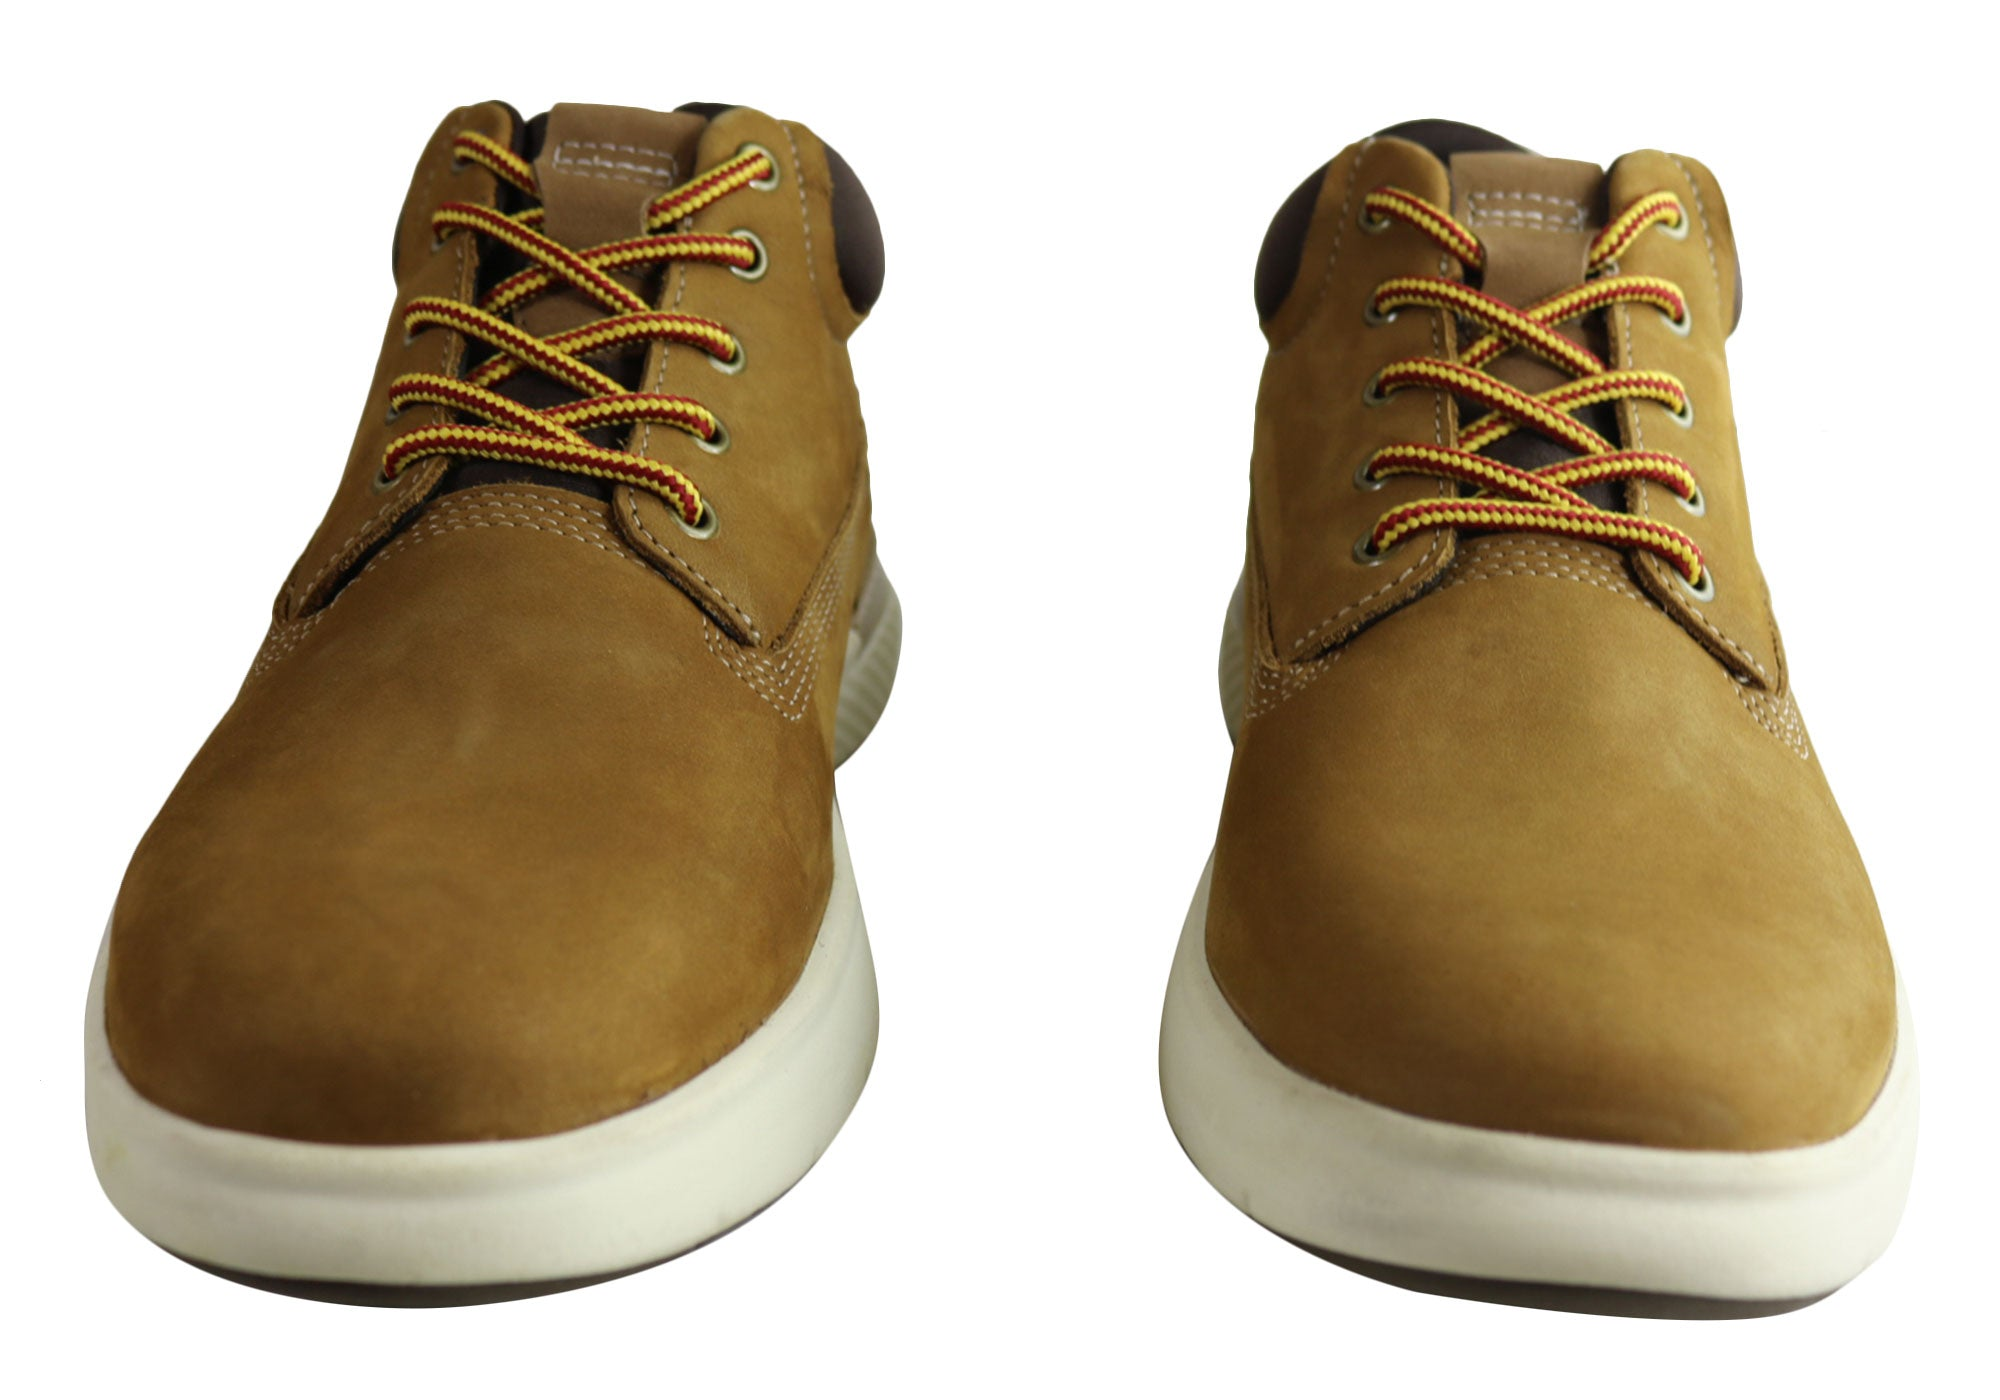 Bradok Cruizer BTS Mens Comfort Leather Casual Boots Made In Brazil